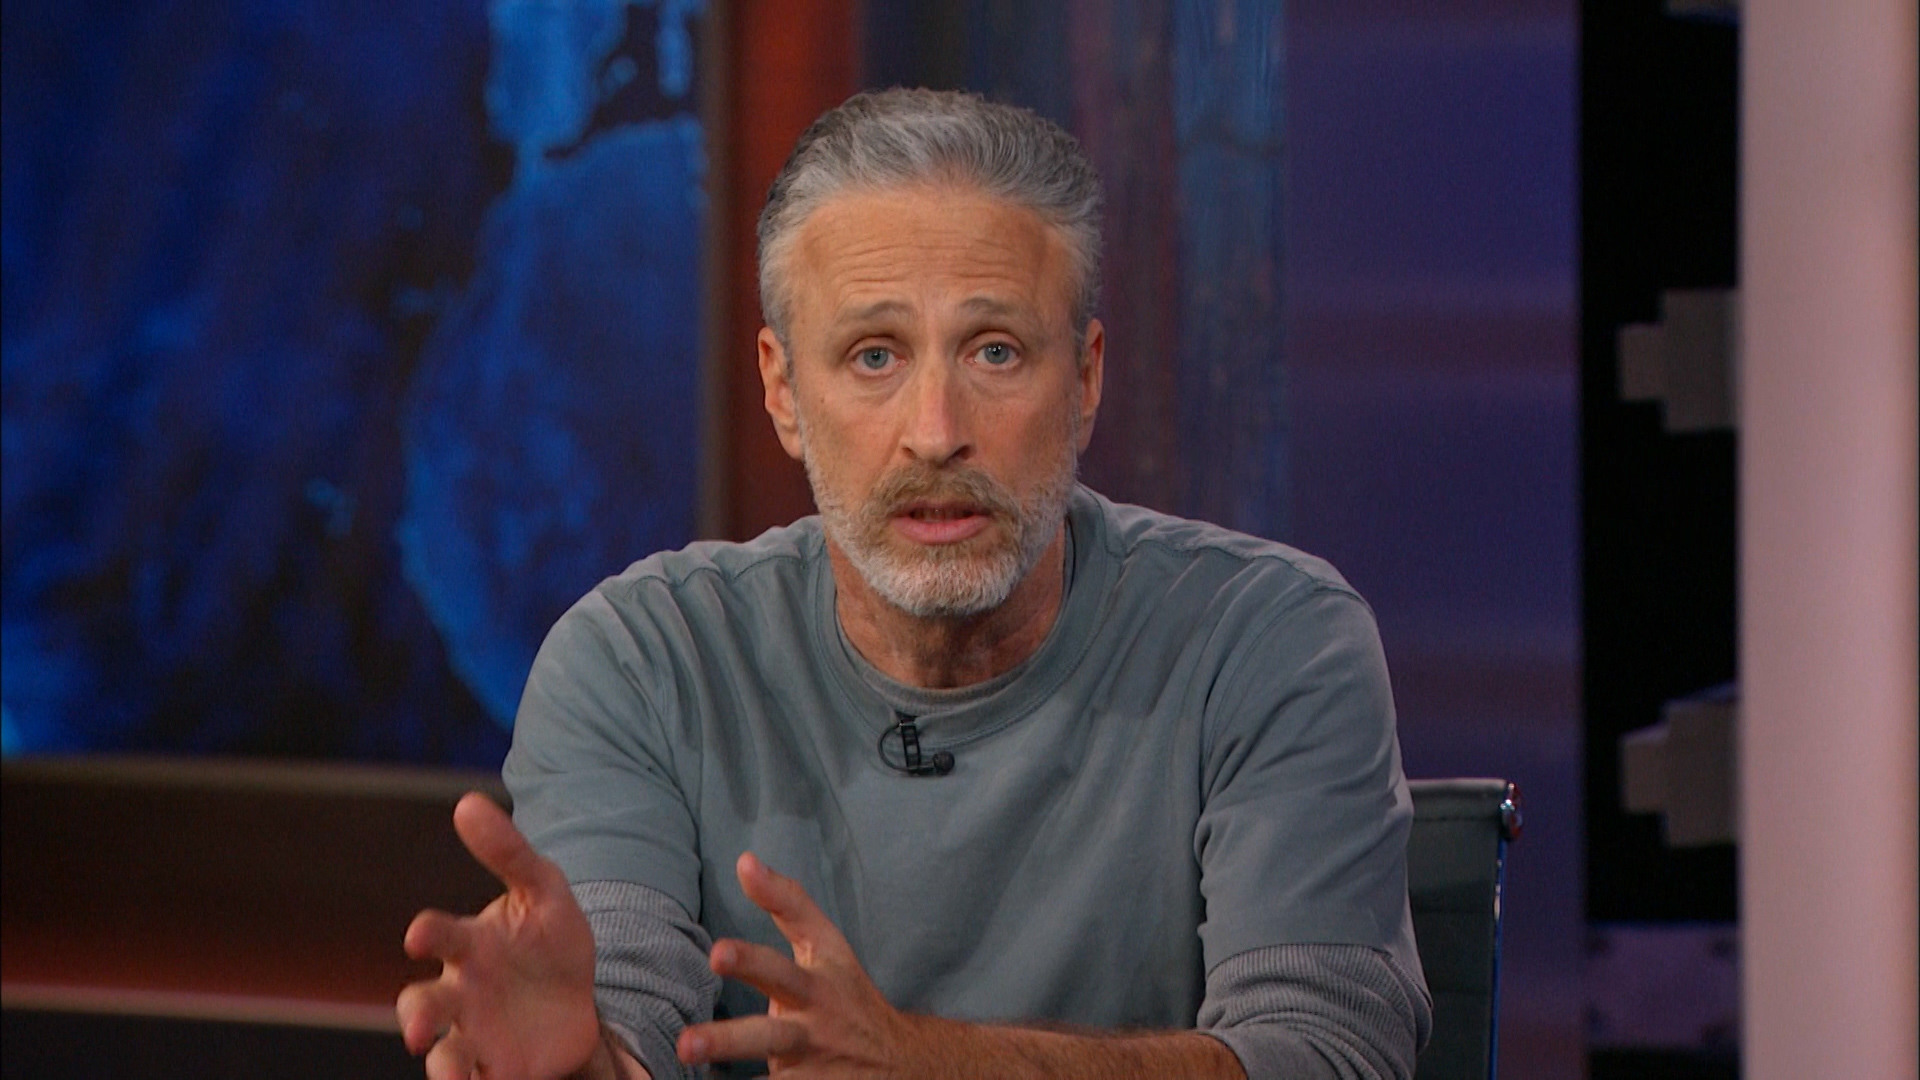 Jon Stewart Returns to Shame Congress